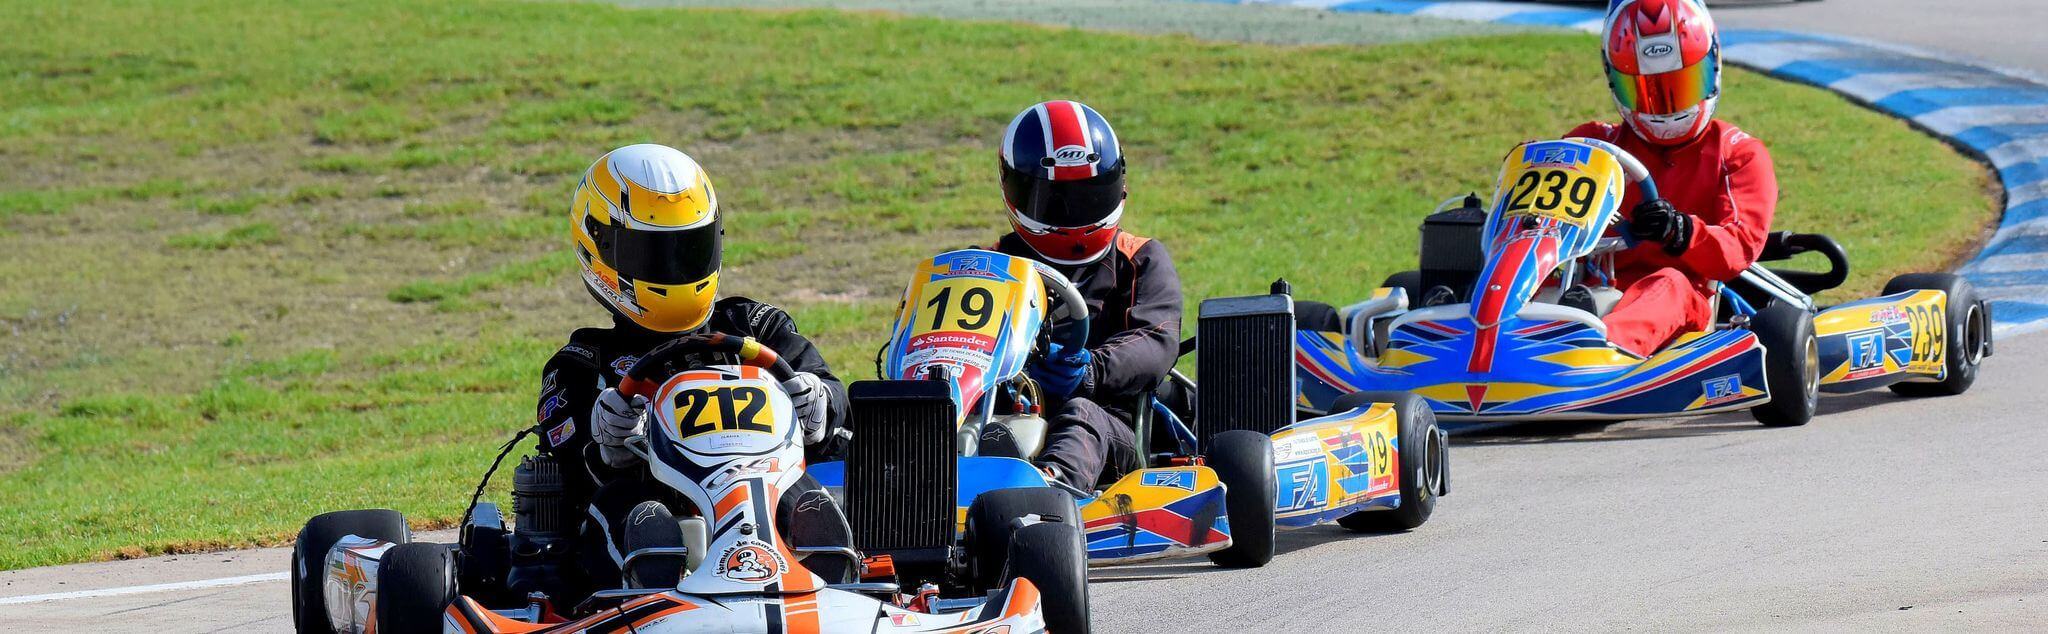 Karting in West Yorkshire